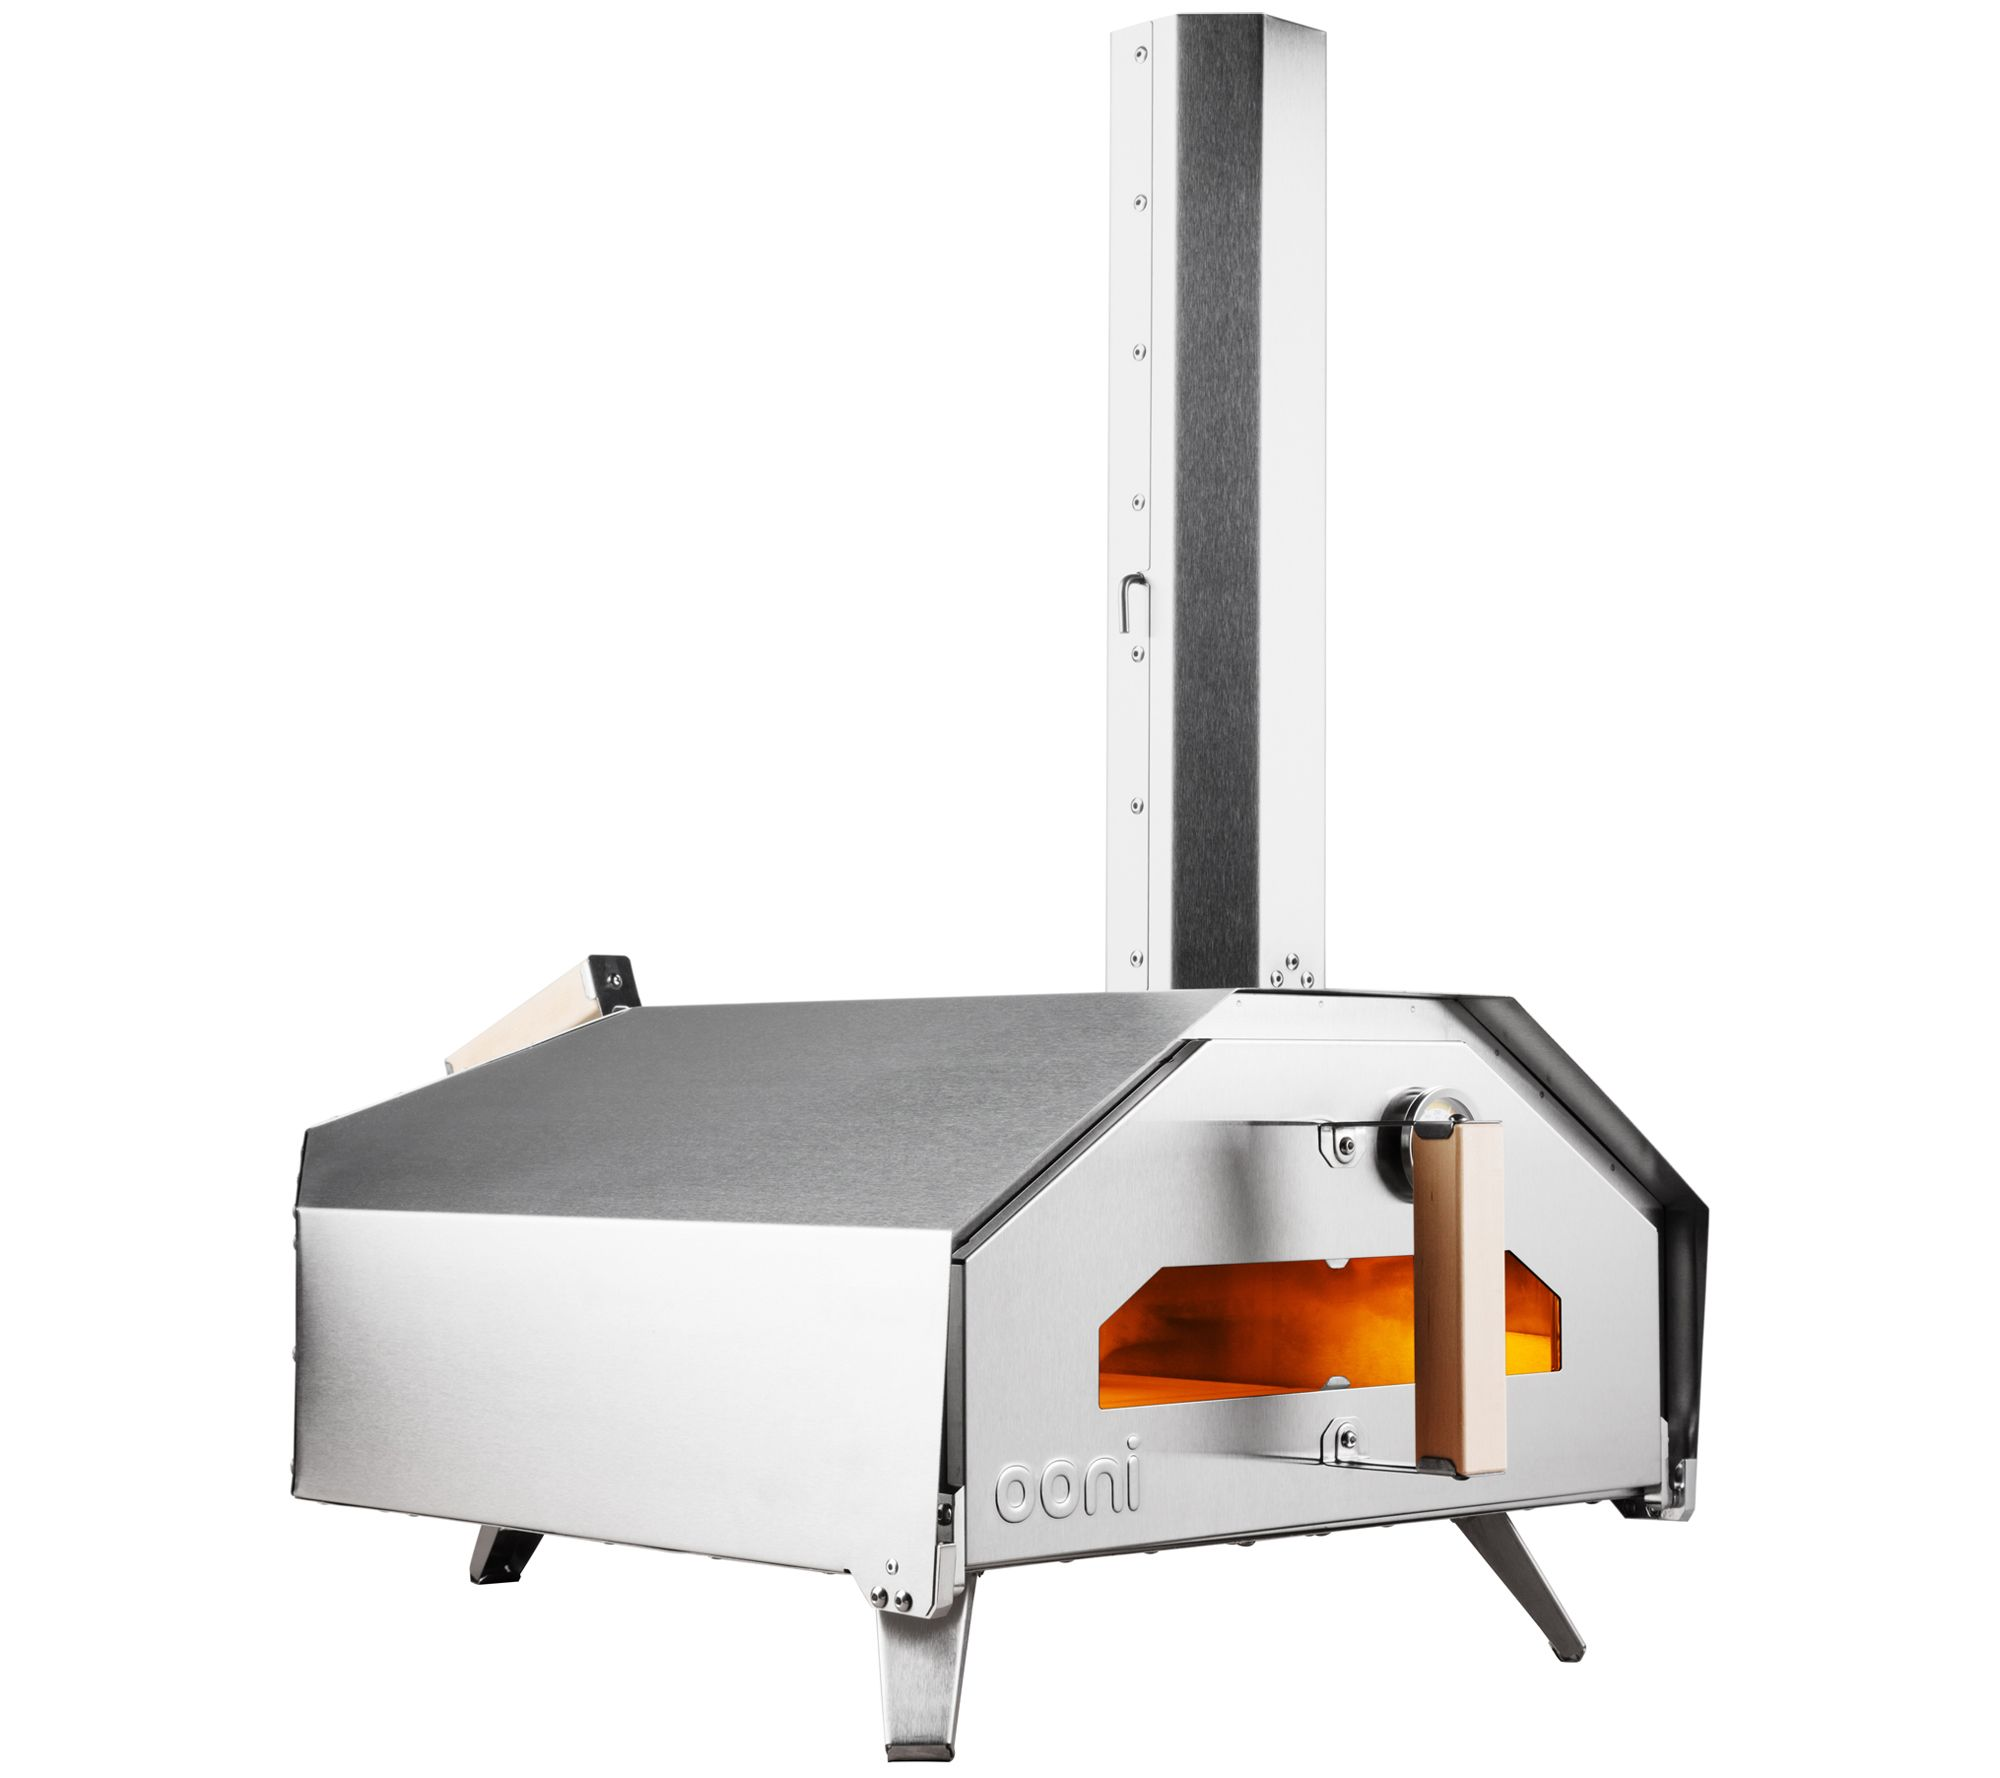 Outdoor pizza oven will change your home tailgate